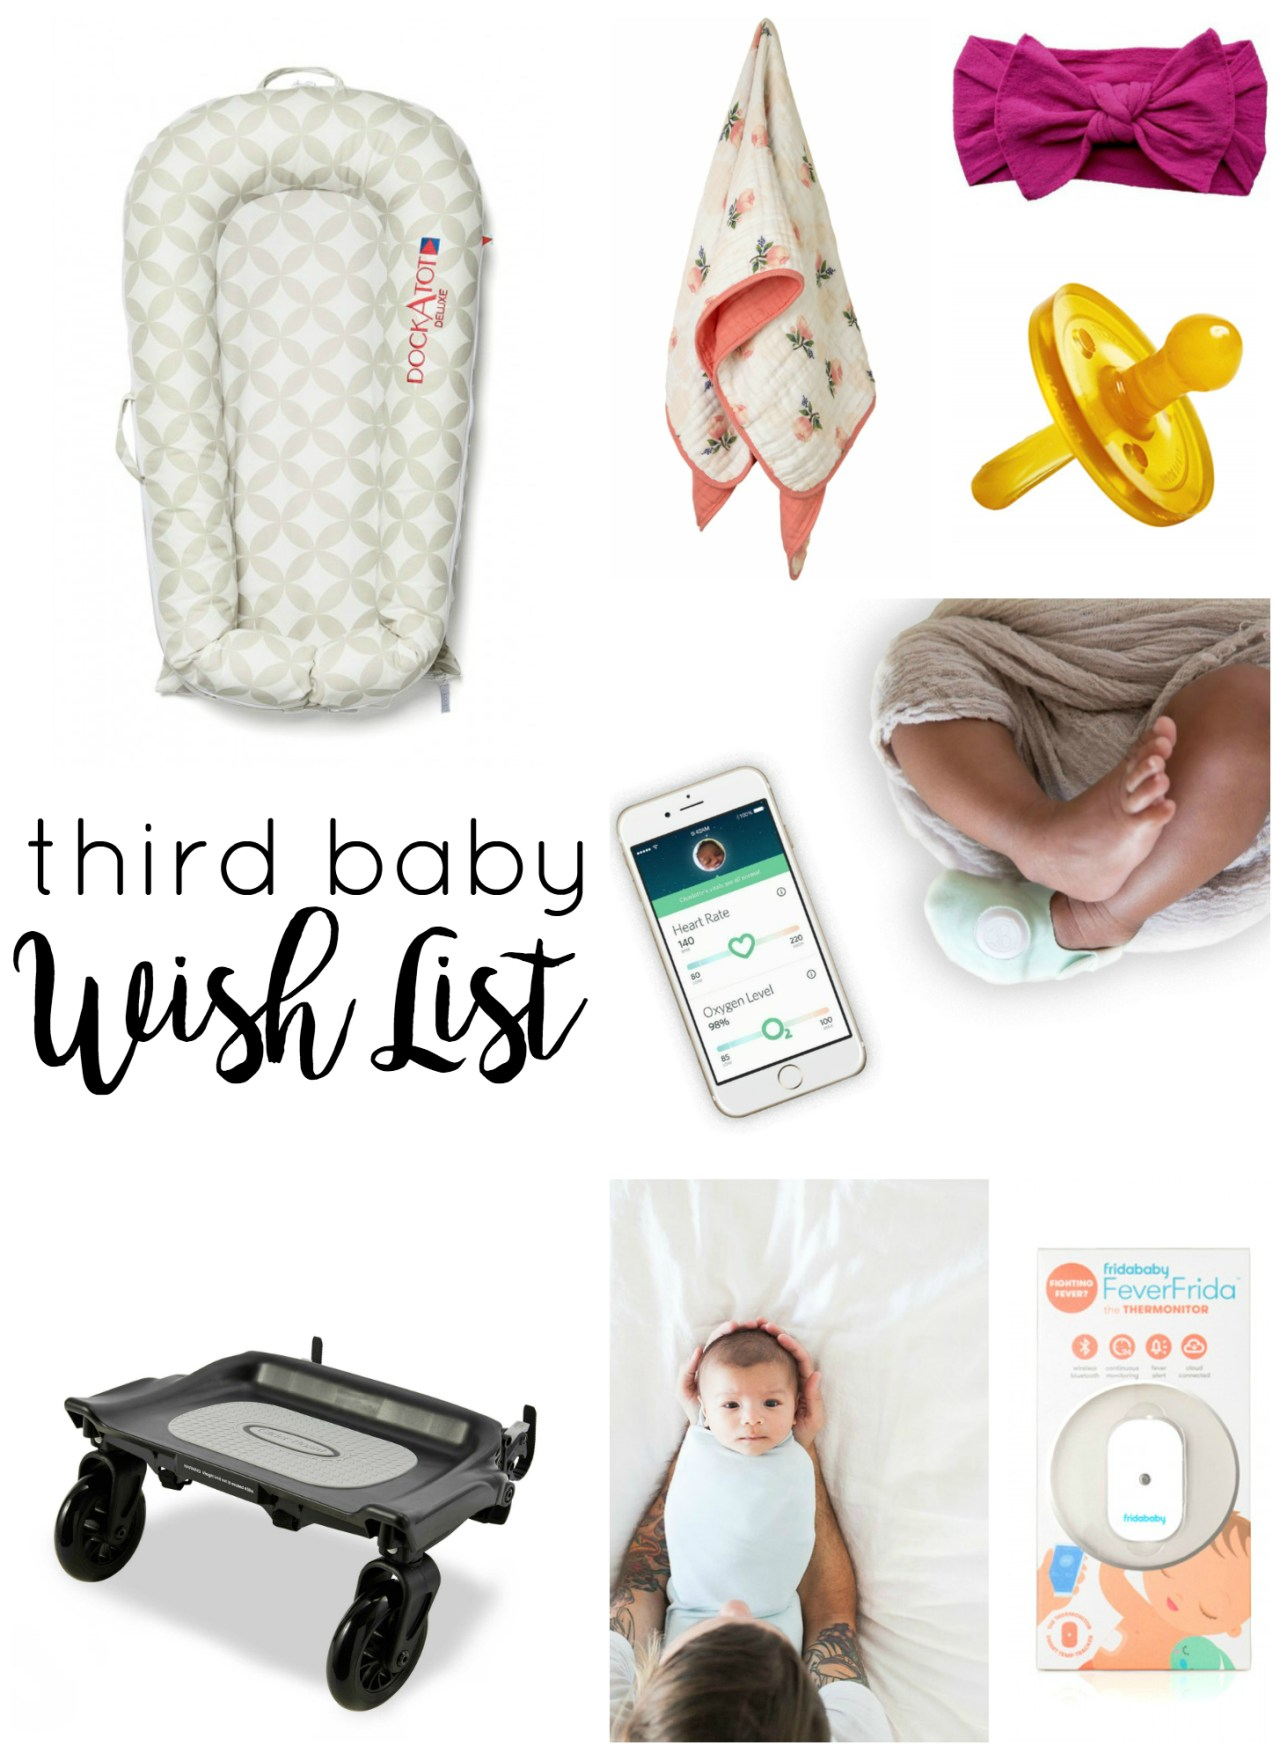 Third Baby Wish List